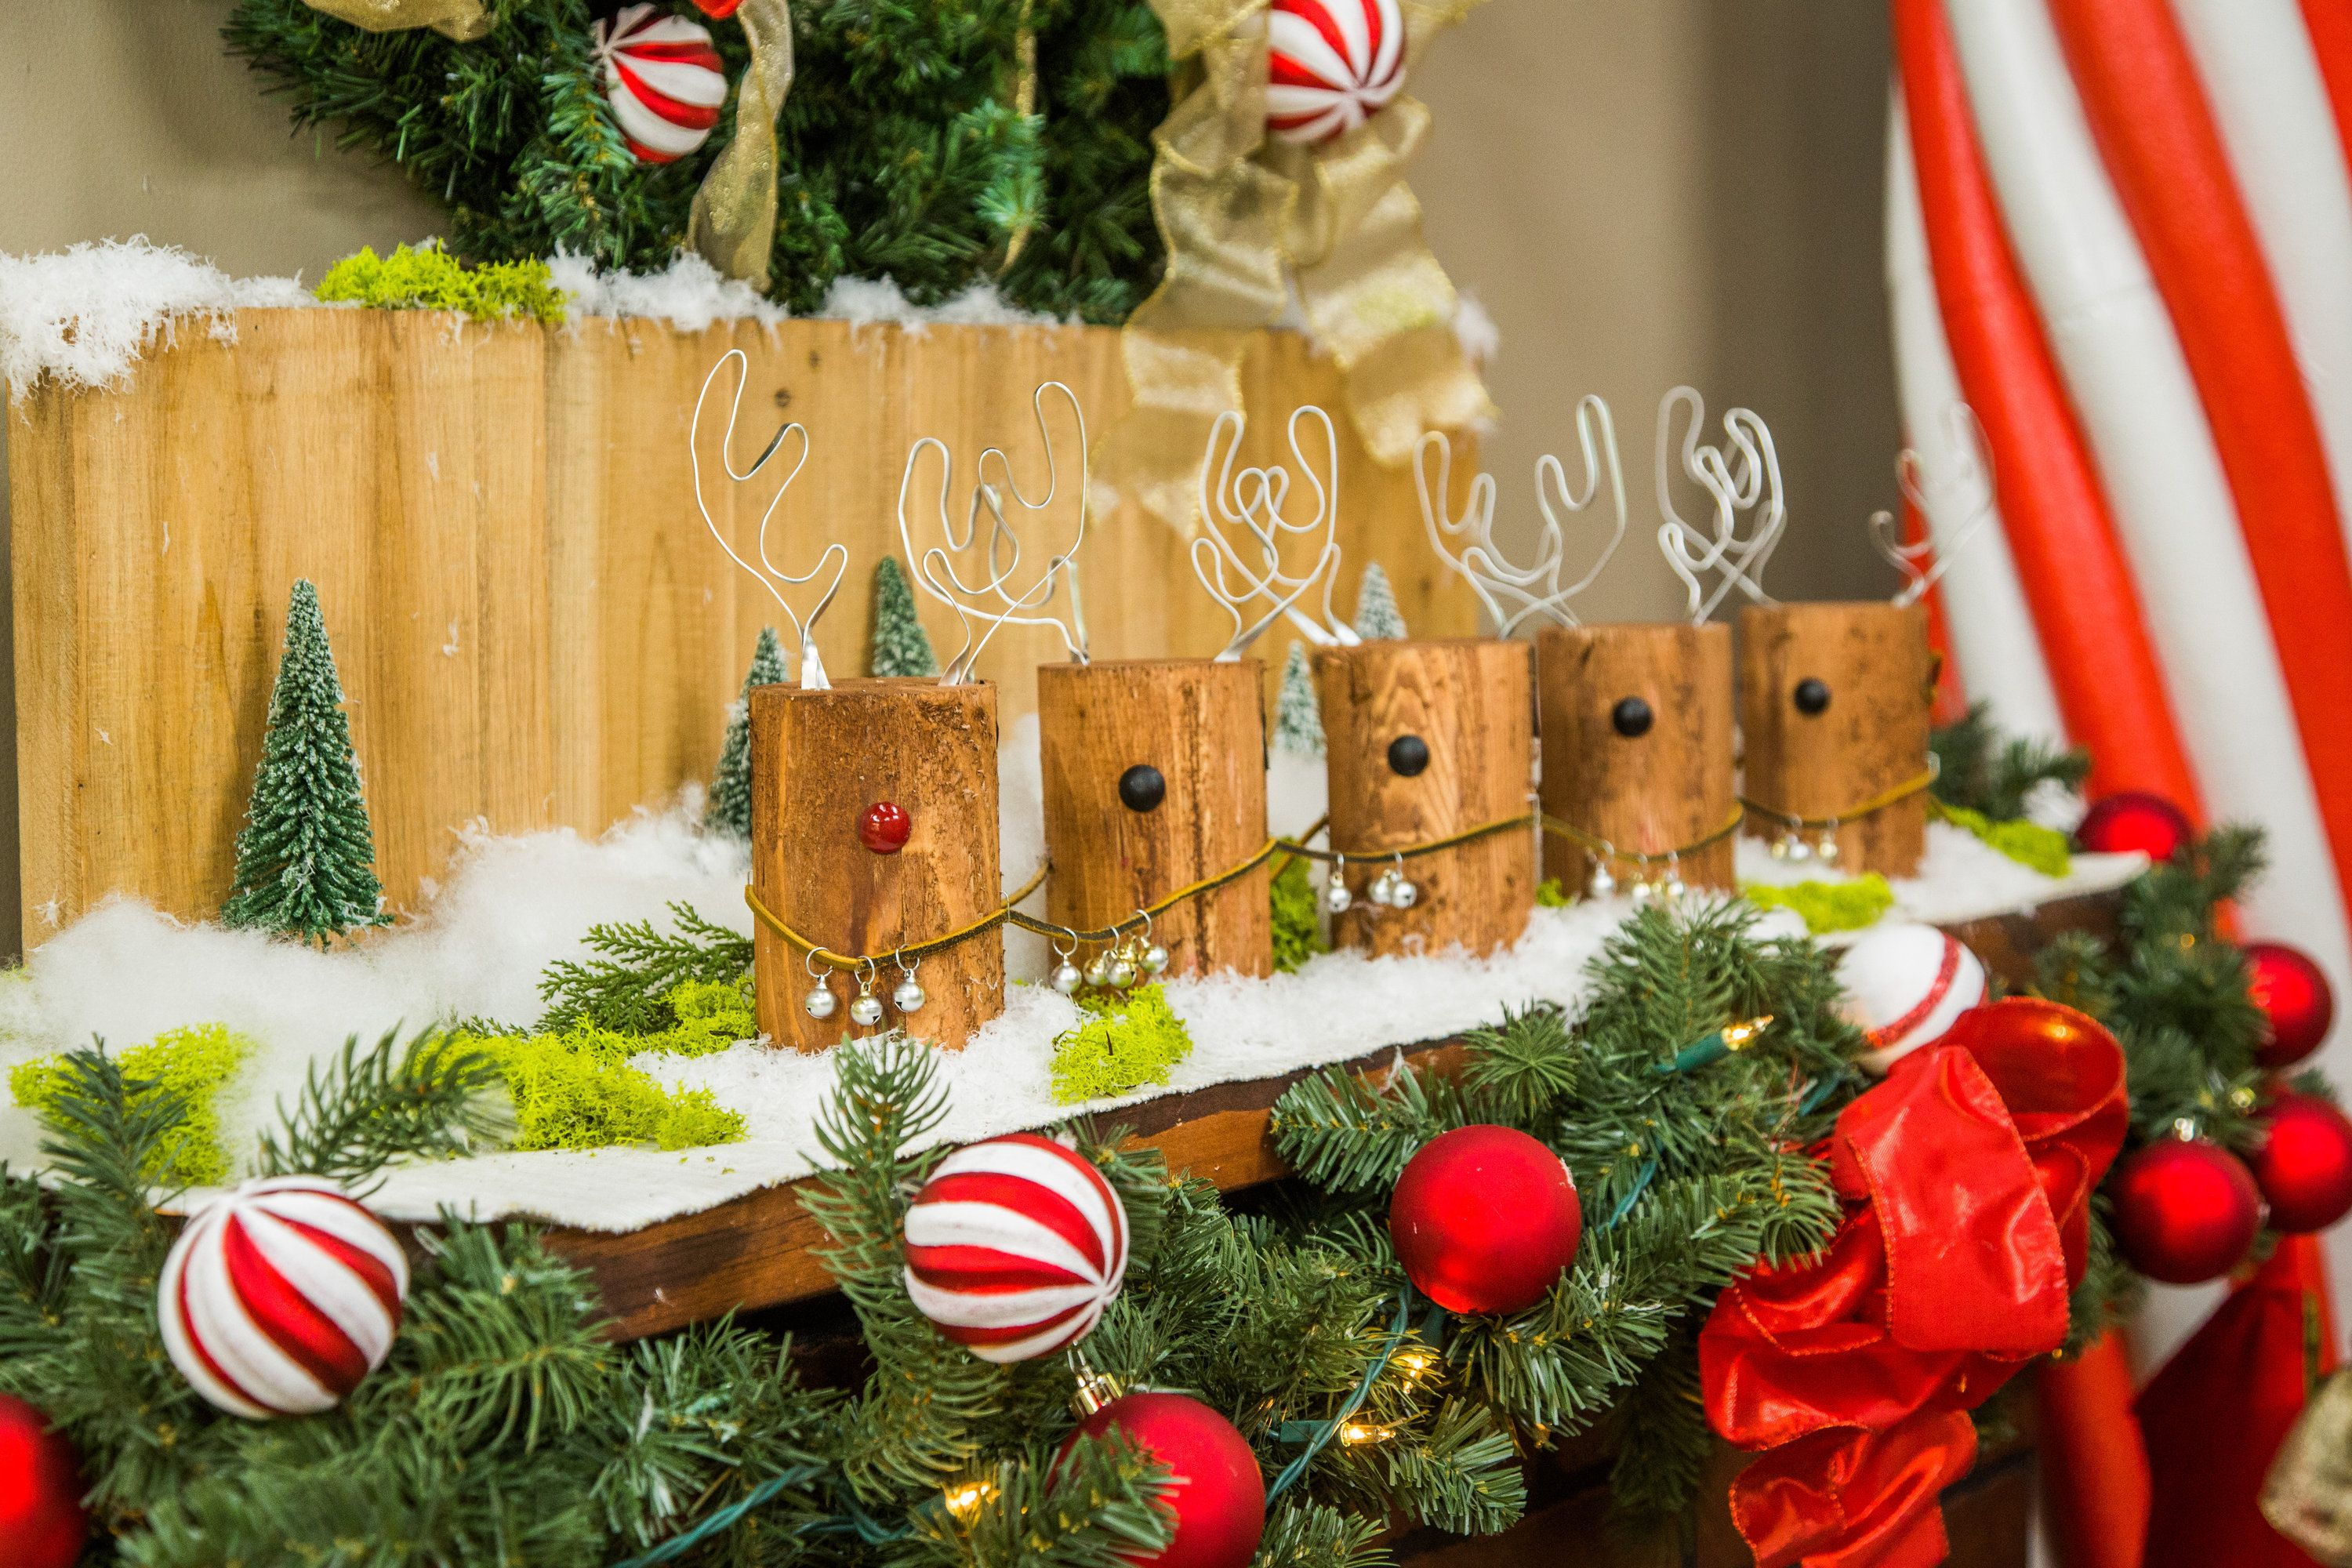 Cute, festive and the perfect little holiday decoration